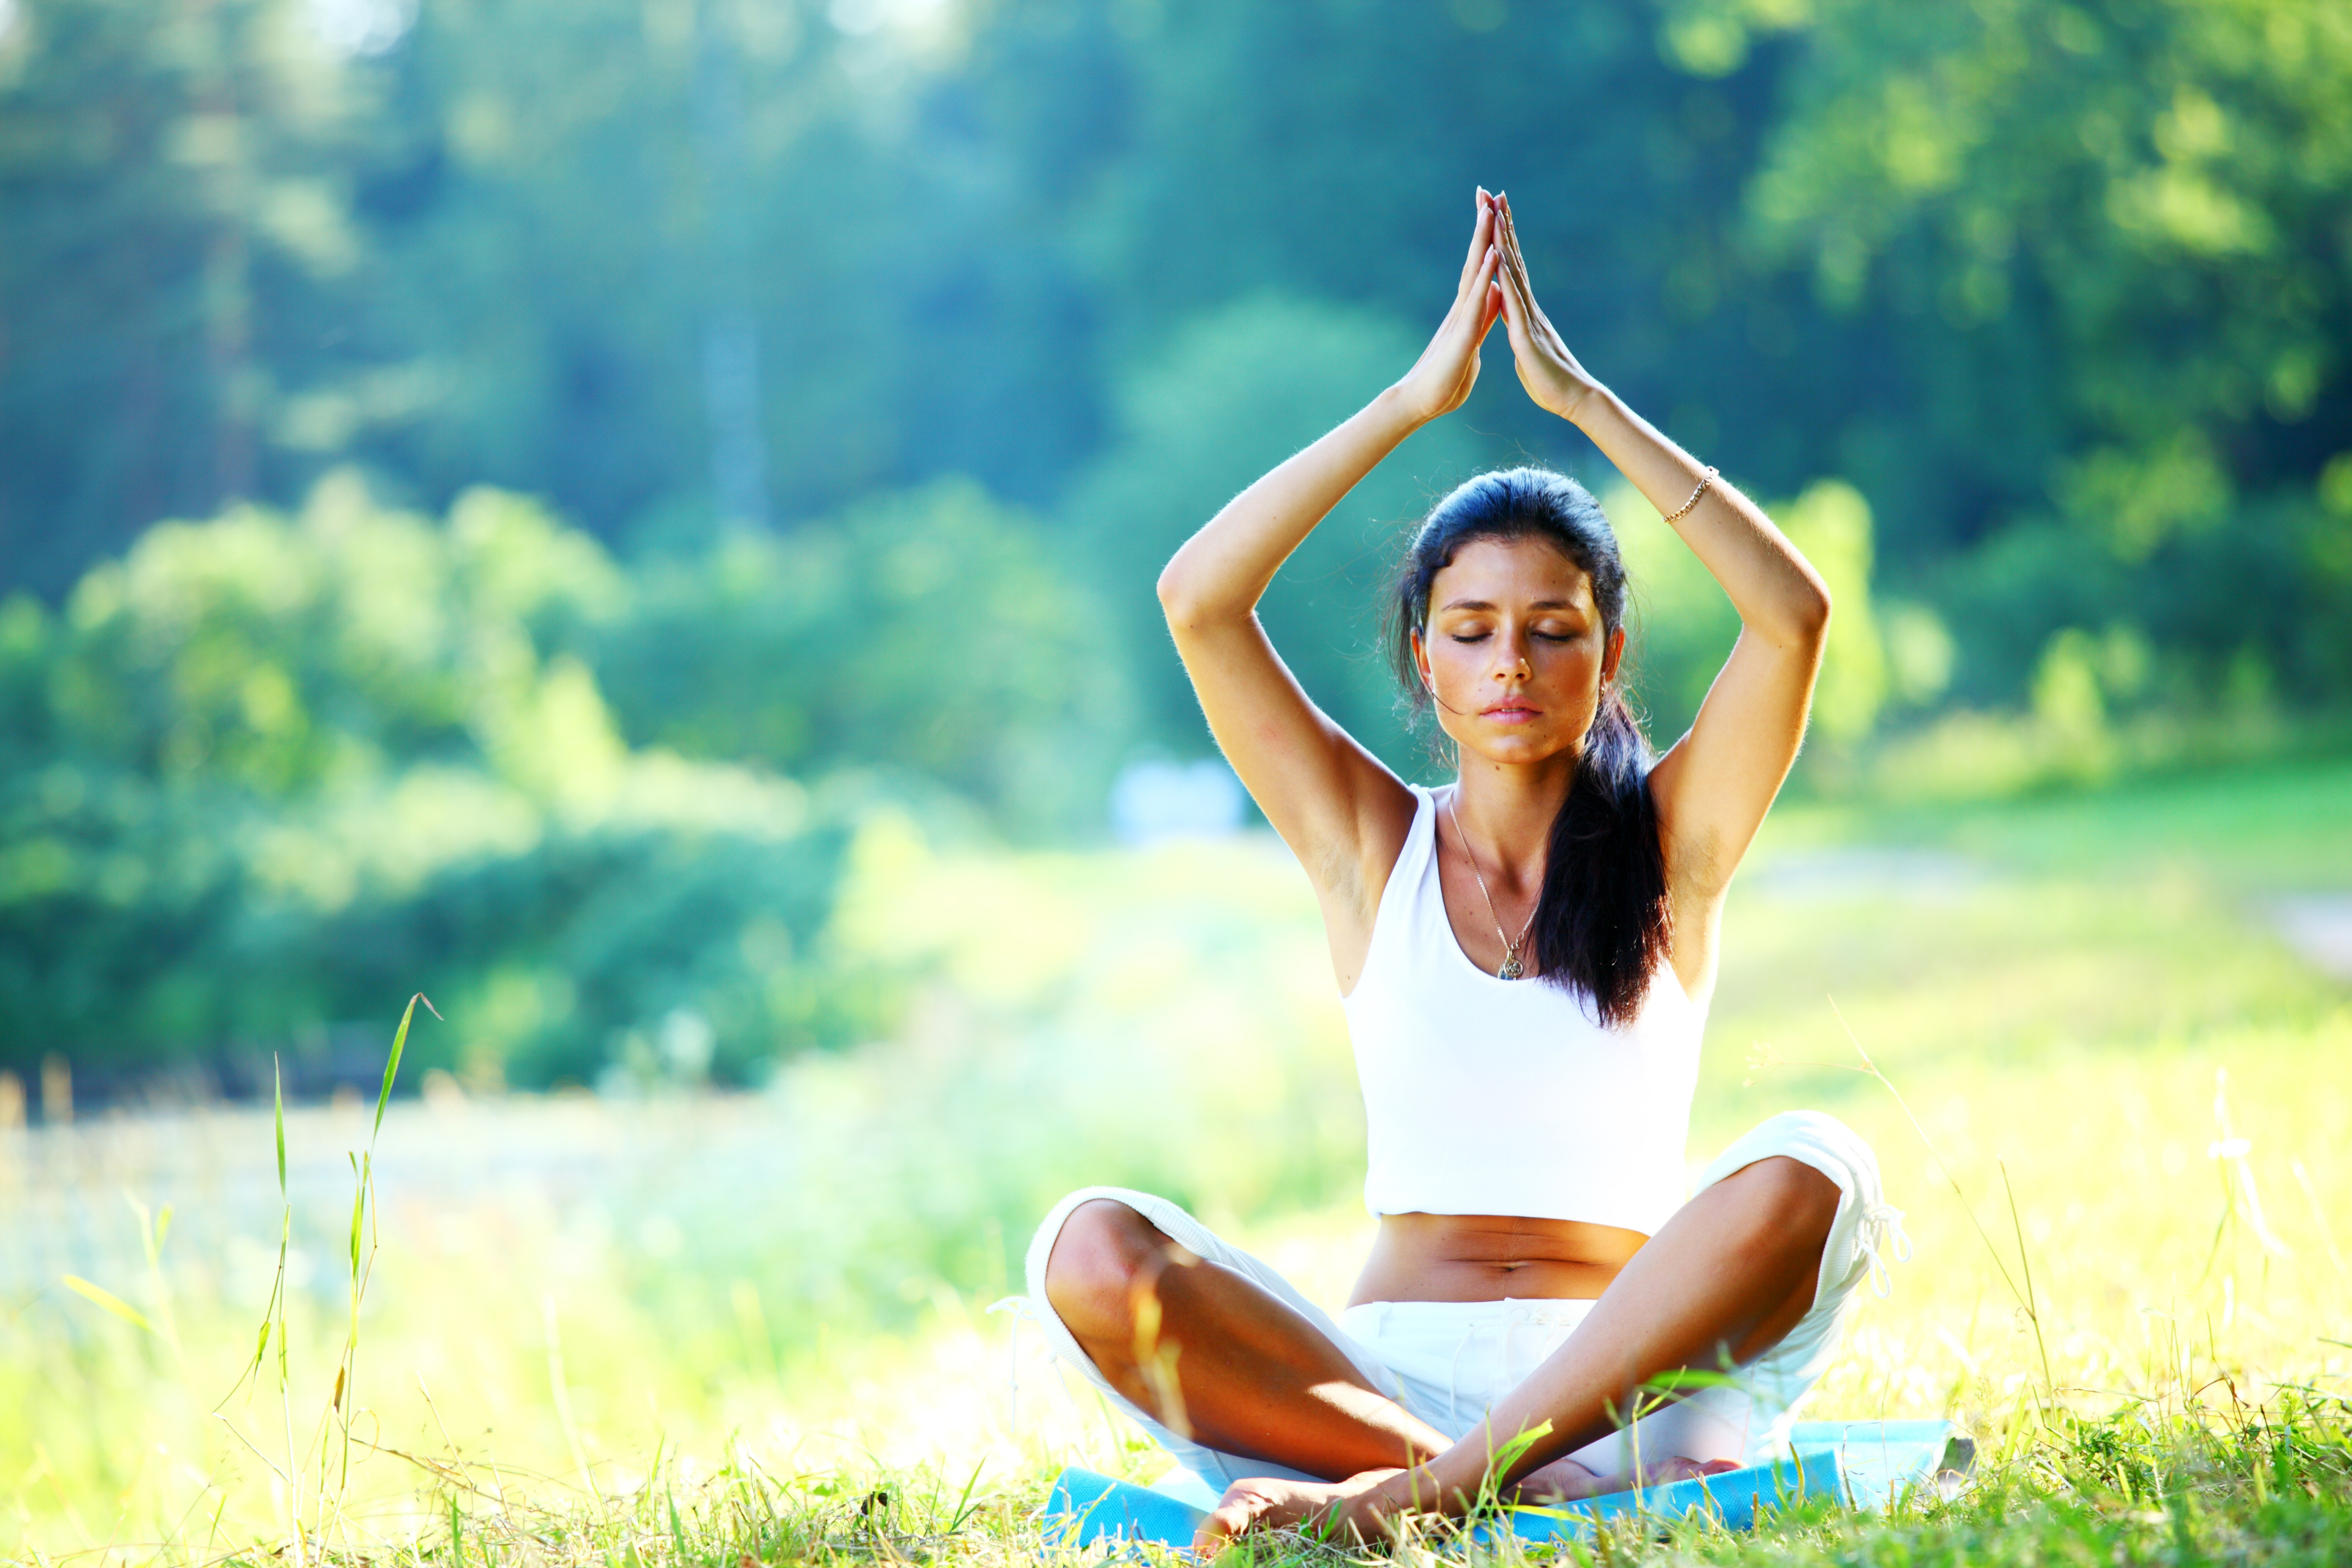 Yoga Benefits - Physical and Mental Advantages